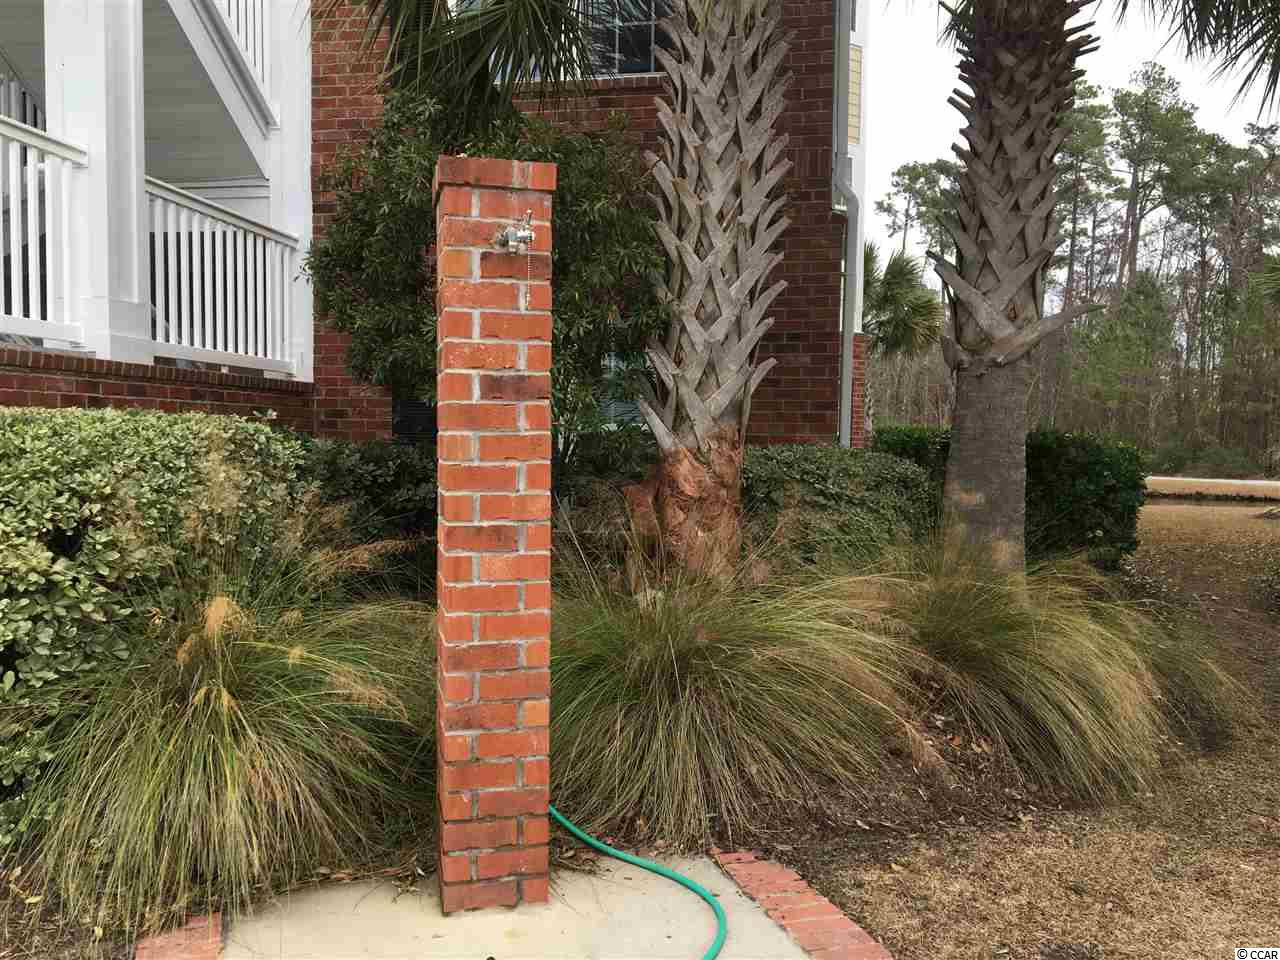 Building 100 condo for sale in Murrells Inlet, SC